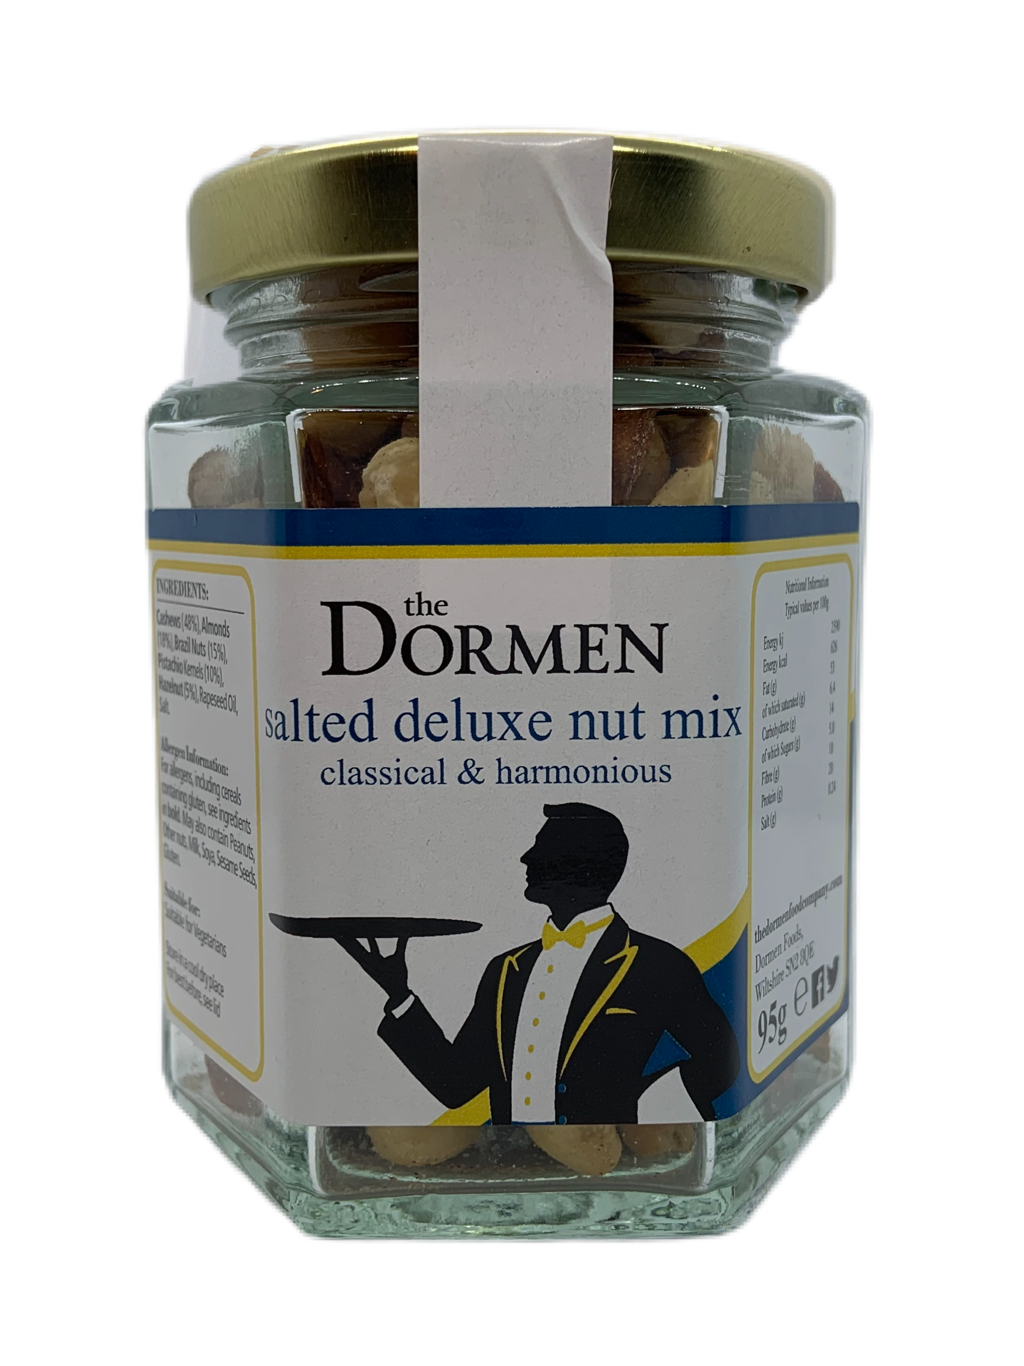 Salted Deluxe Nut Mix Hexagonal Jar (Trade) - The Dormen Food Company